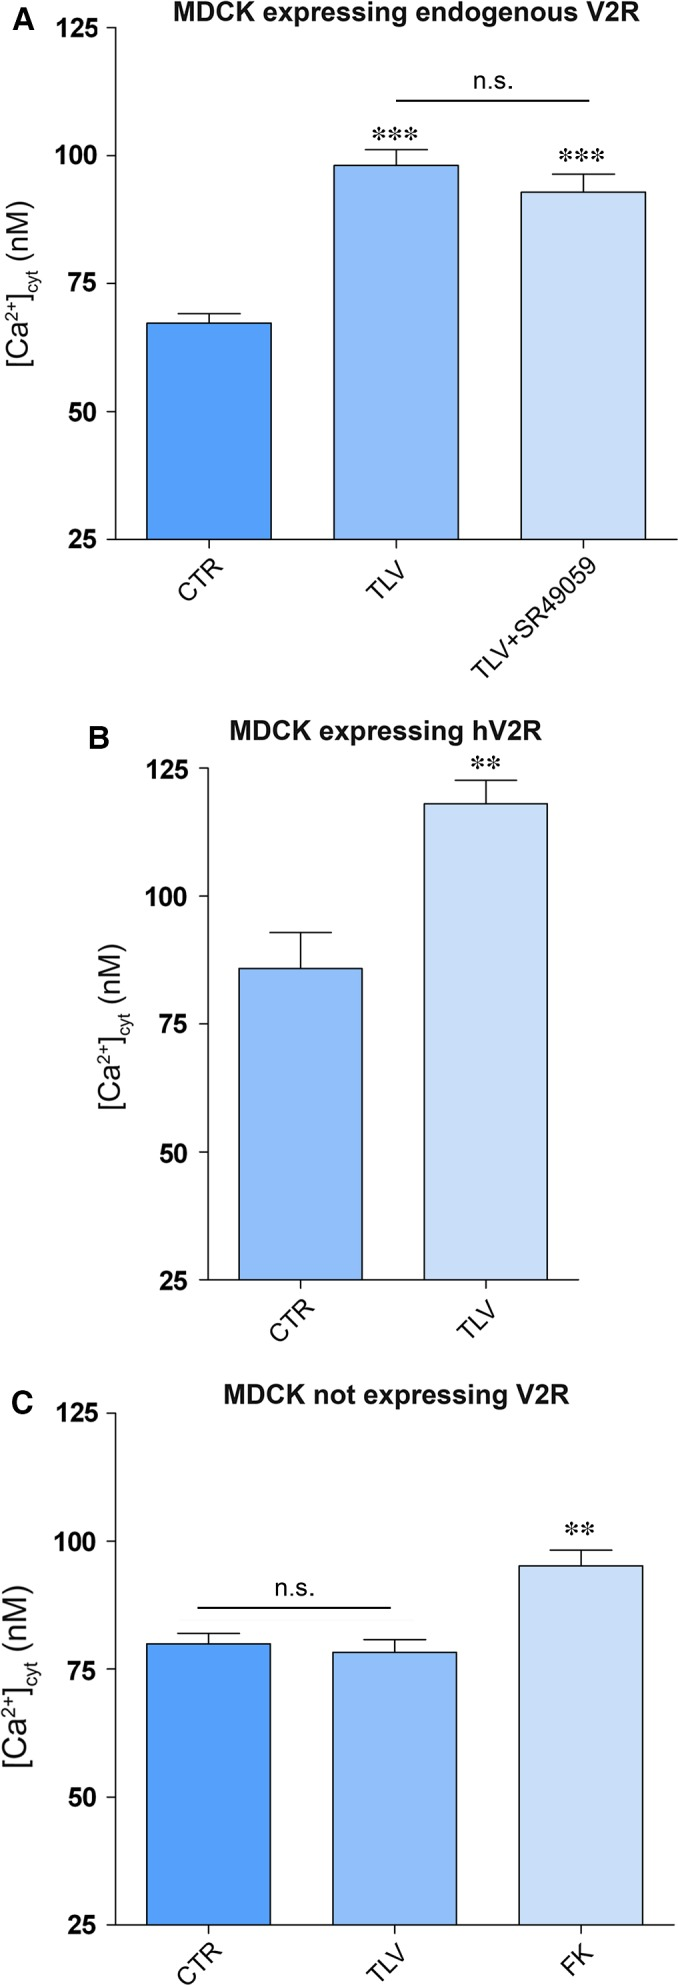 Effect of <t>tolvaptan</t> on free cytosolic calcium content in MDCK cells. ( A ) MDCKI cells, expressing V2R endogenously, were loaded with 7 μM fura‐2‐AM for 15 min. at 37°C in DMEM. Cells were left under basal conditions ( n = 71 cells) or treated with tolvaptan ( n = 97 cells) or tolvaptan in the presence of V1a receptor antagonist (SR49059) ( n = 60 cells). Data are expressed as means ± S.E.Ms (*** P